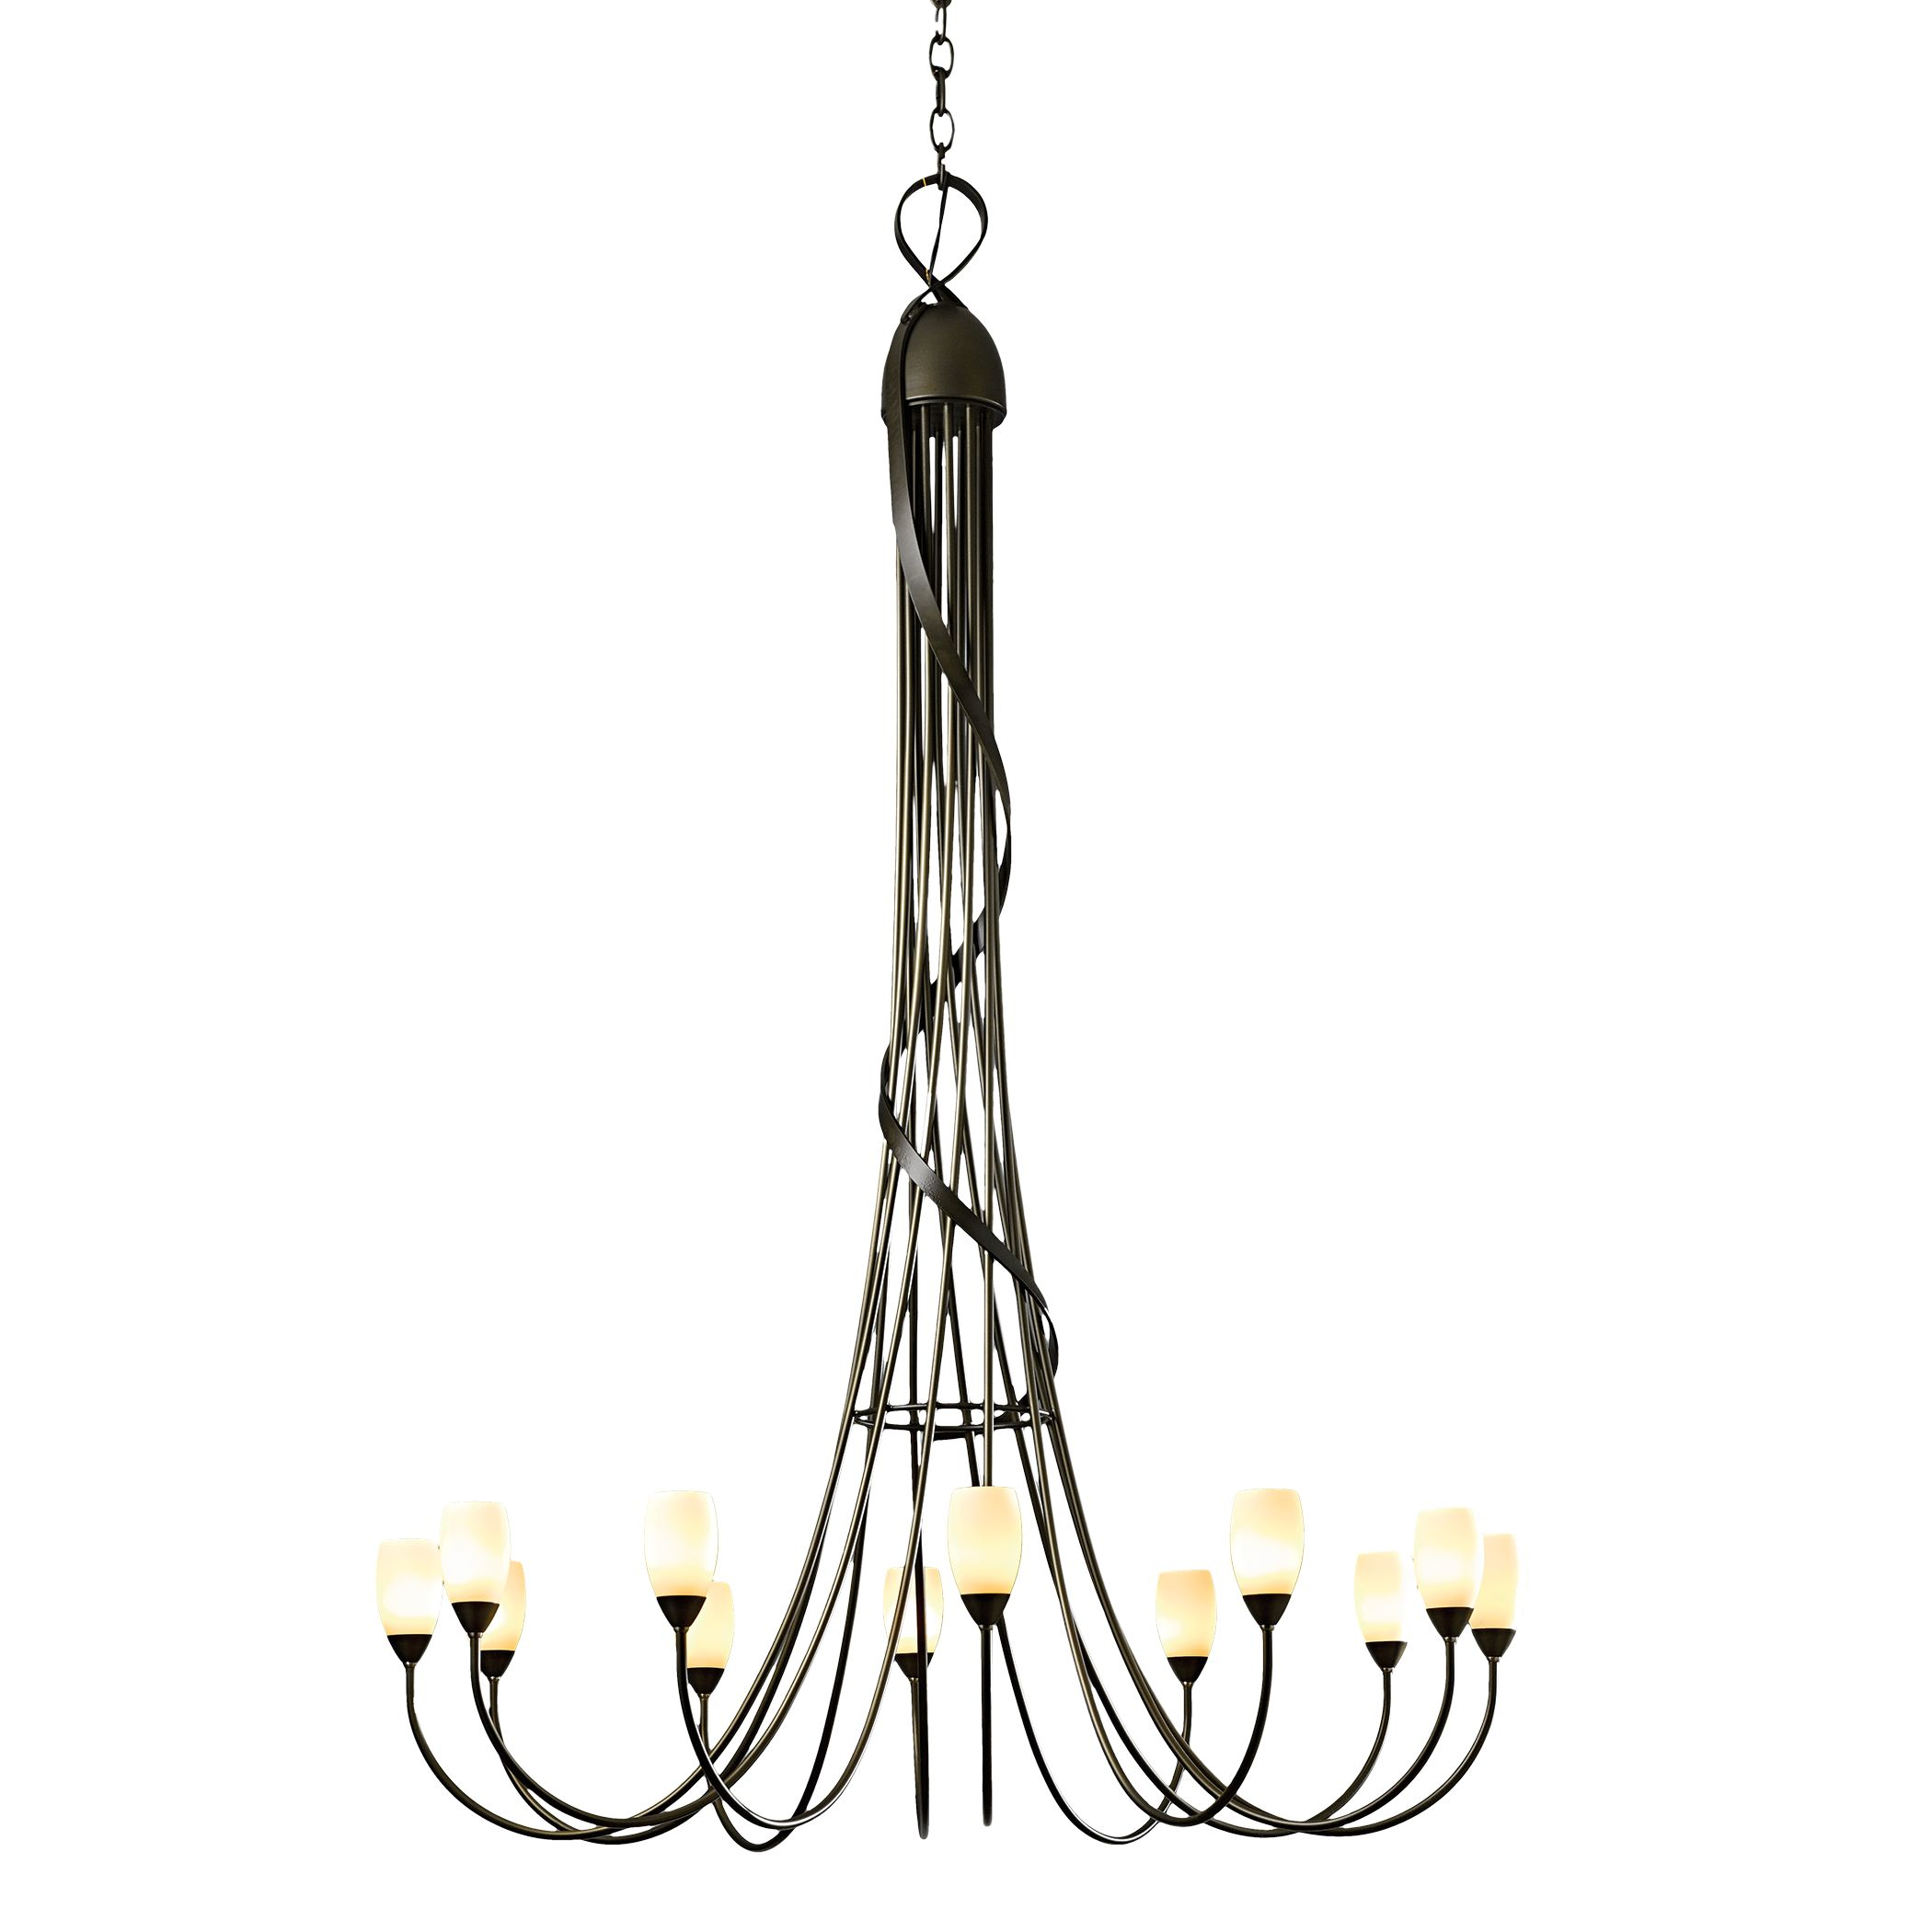 Hubbardton Forge Sweeping Taper: Sweeping Taper 5 Arm Chandelier